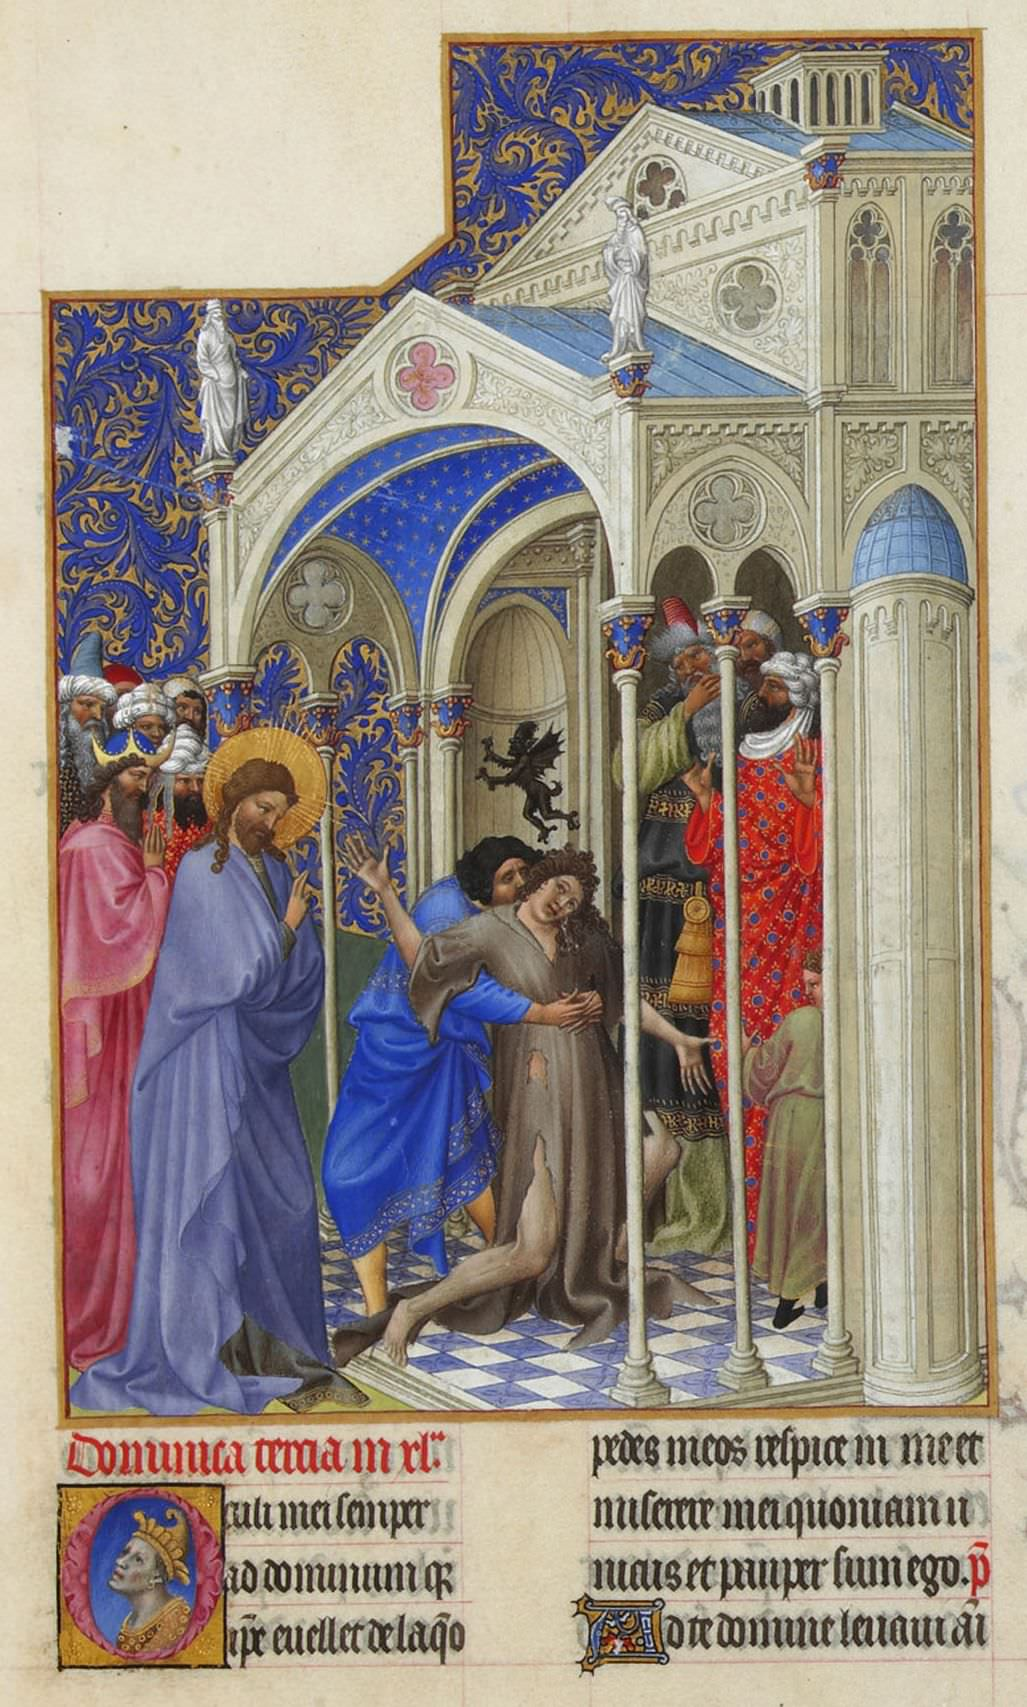 The Exorcism - Folio 166r from Très Riches Heures